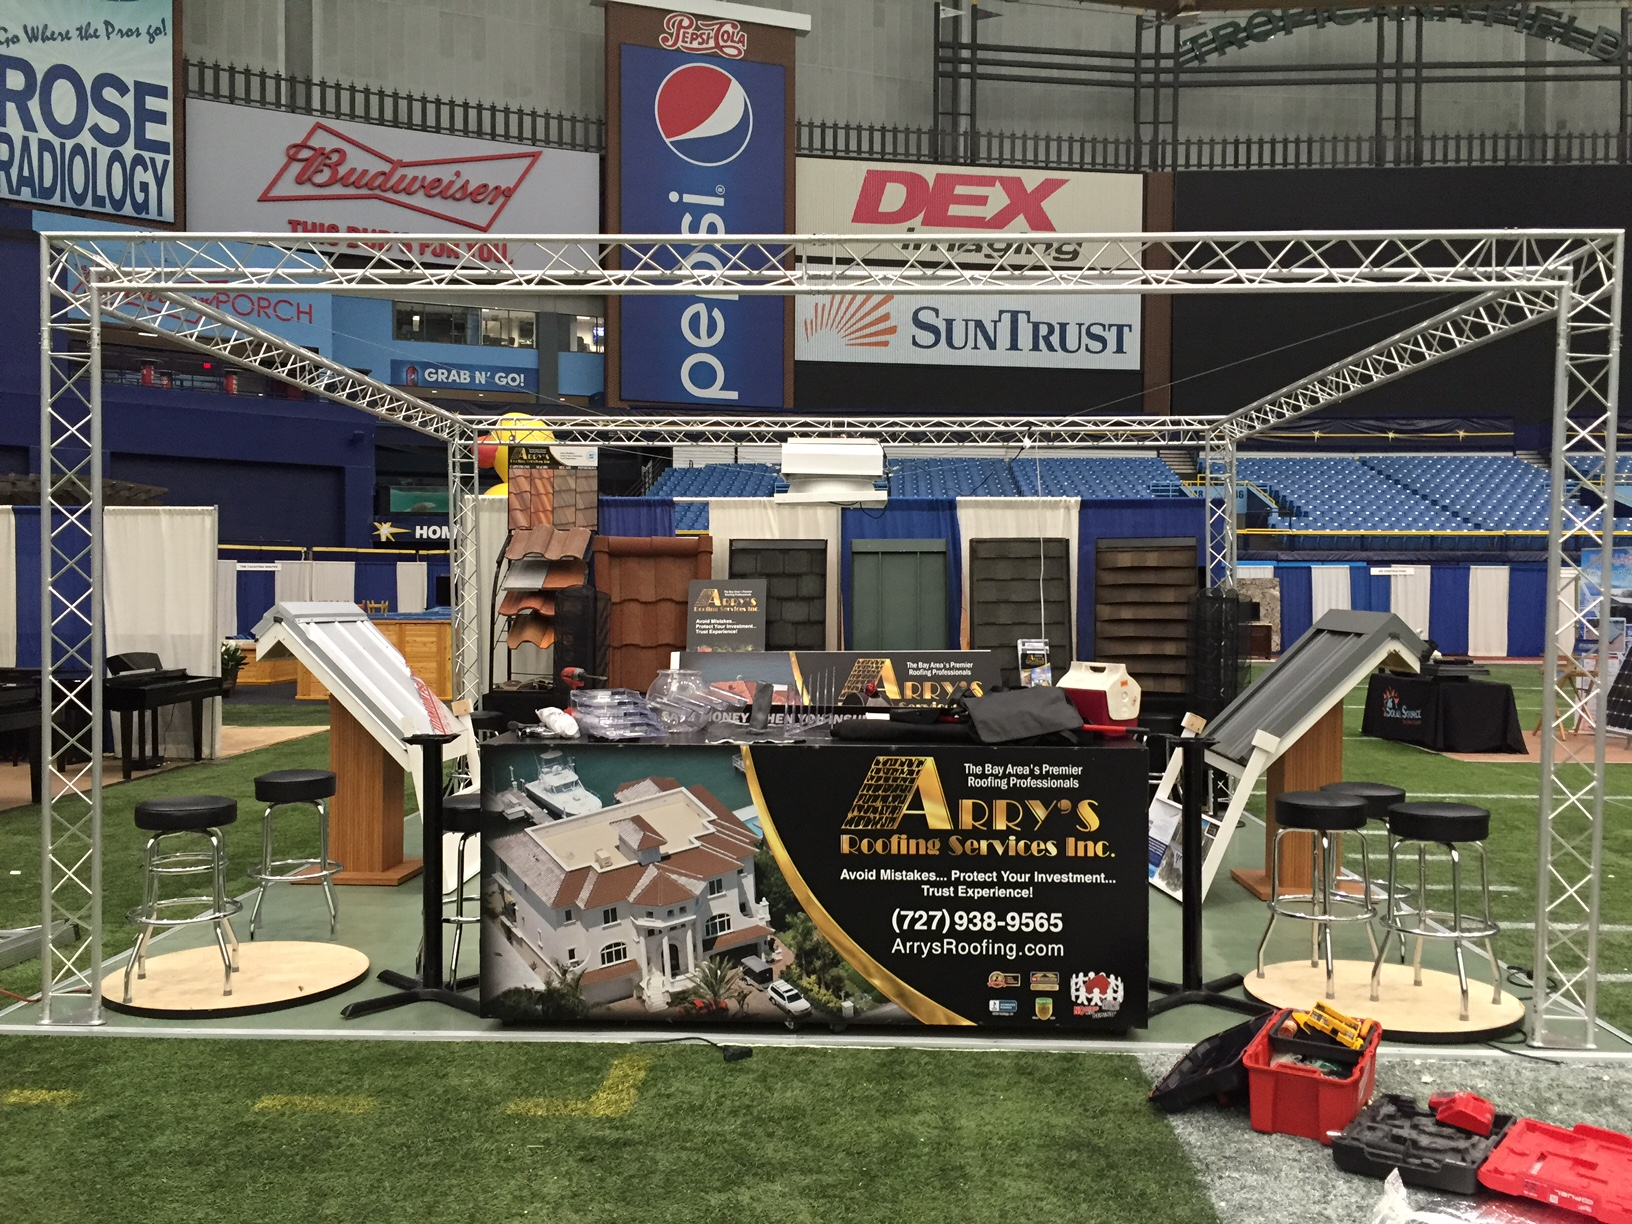 Catch Arry's Roofing at the Tampa Bay Home Show This Weekend